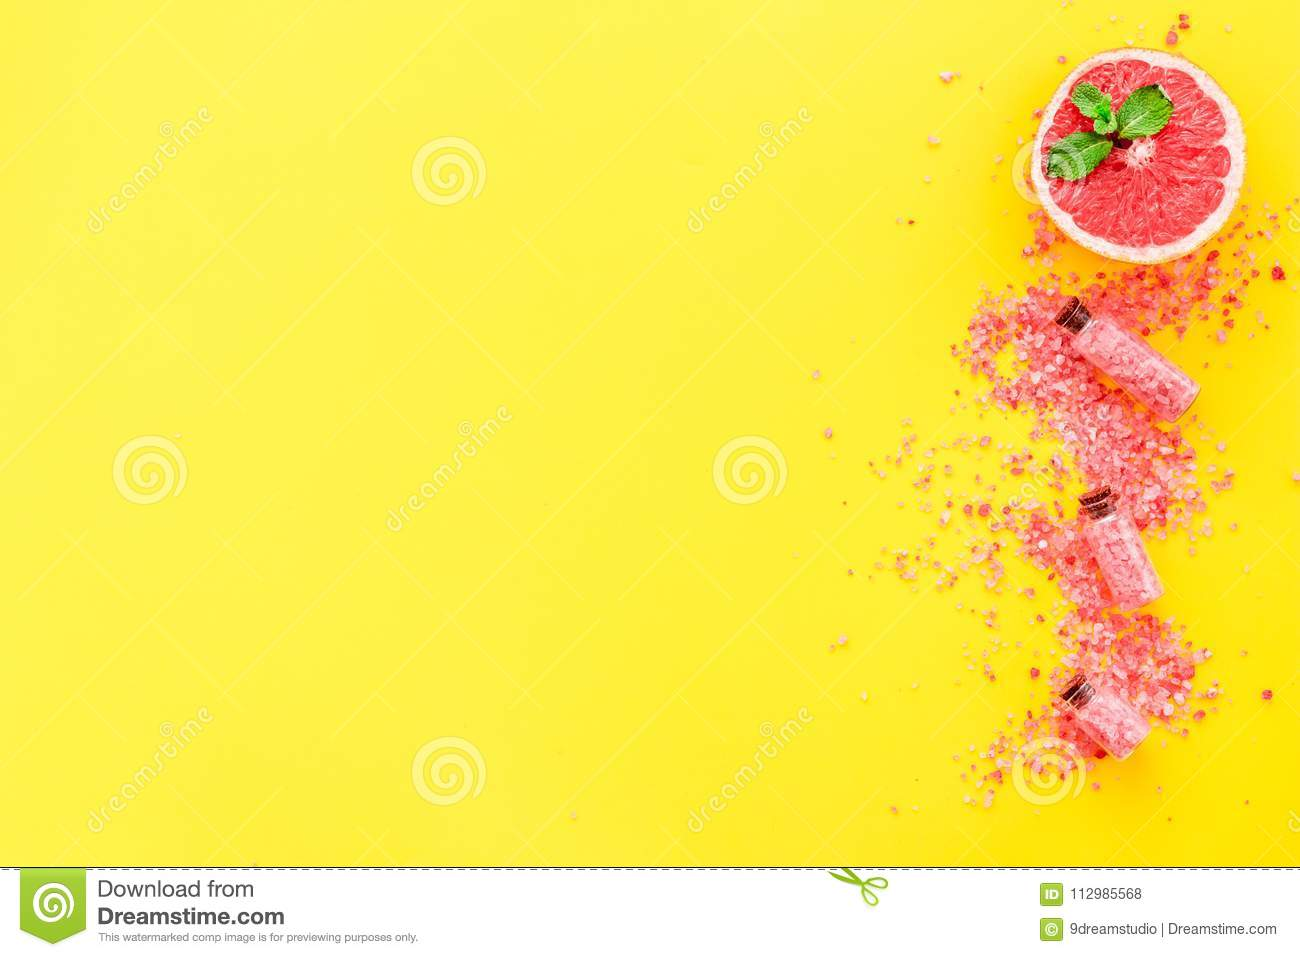 Homemade spa with grapefruit salt in natural cosmetic set fruit yellow background top view mock up